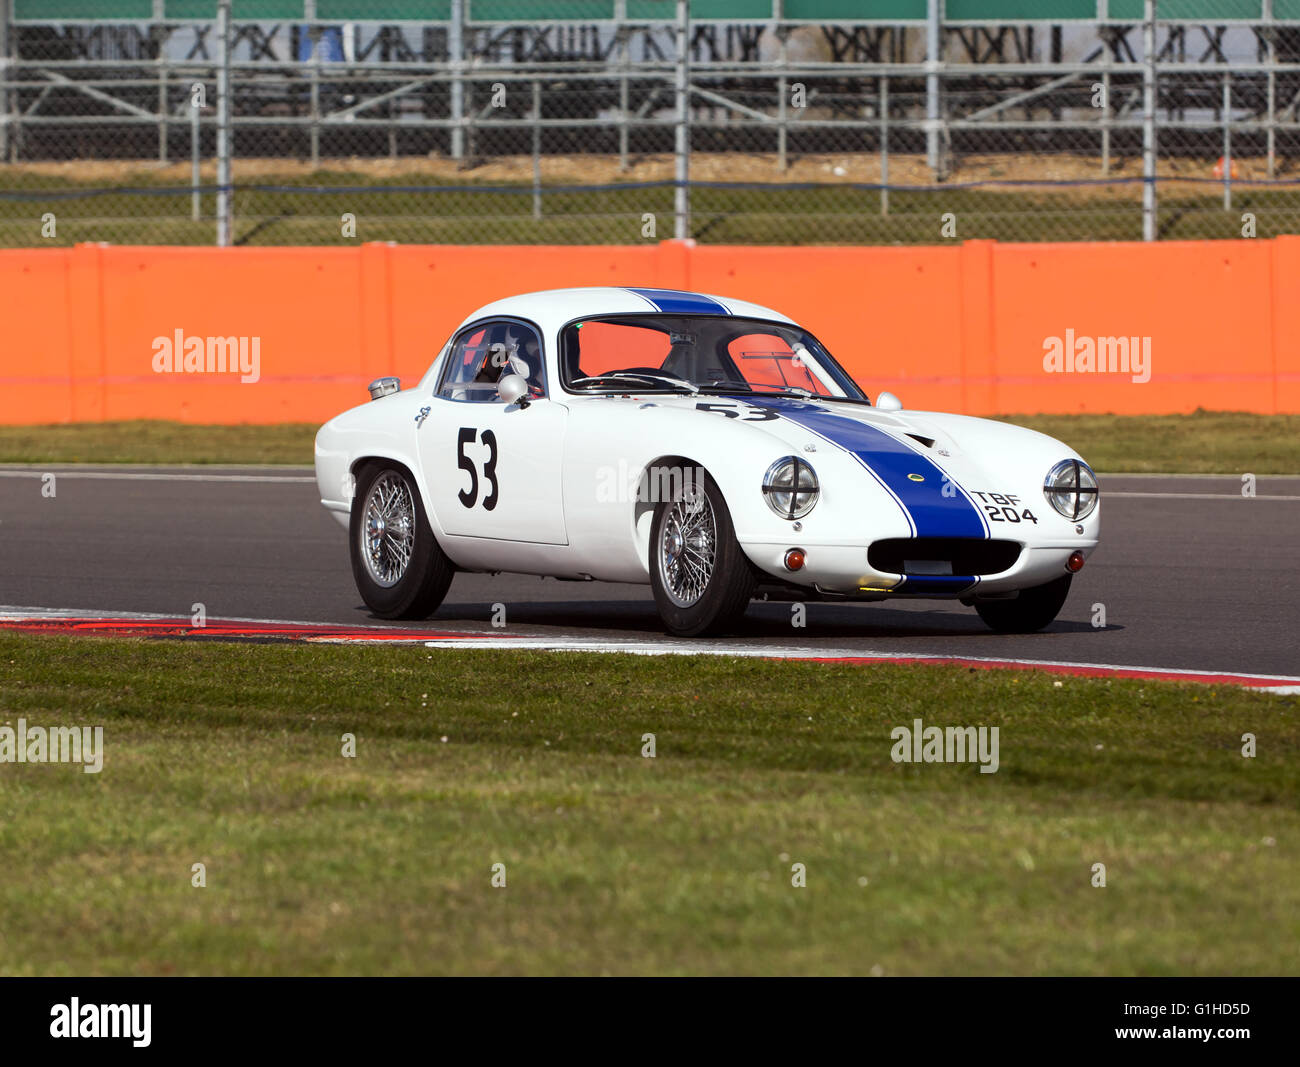 A Lotus Elite type 14, driven by Paul and Ewan Bason, during the Silverstone Classic Media Test Day - Stock Image